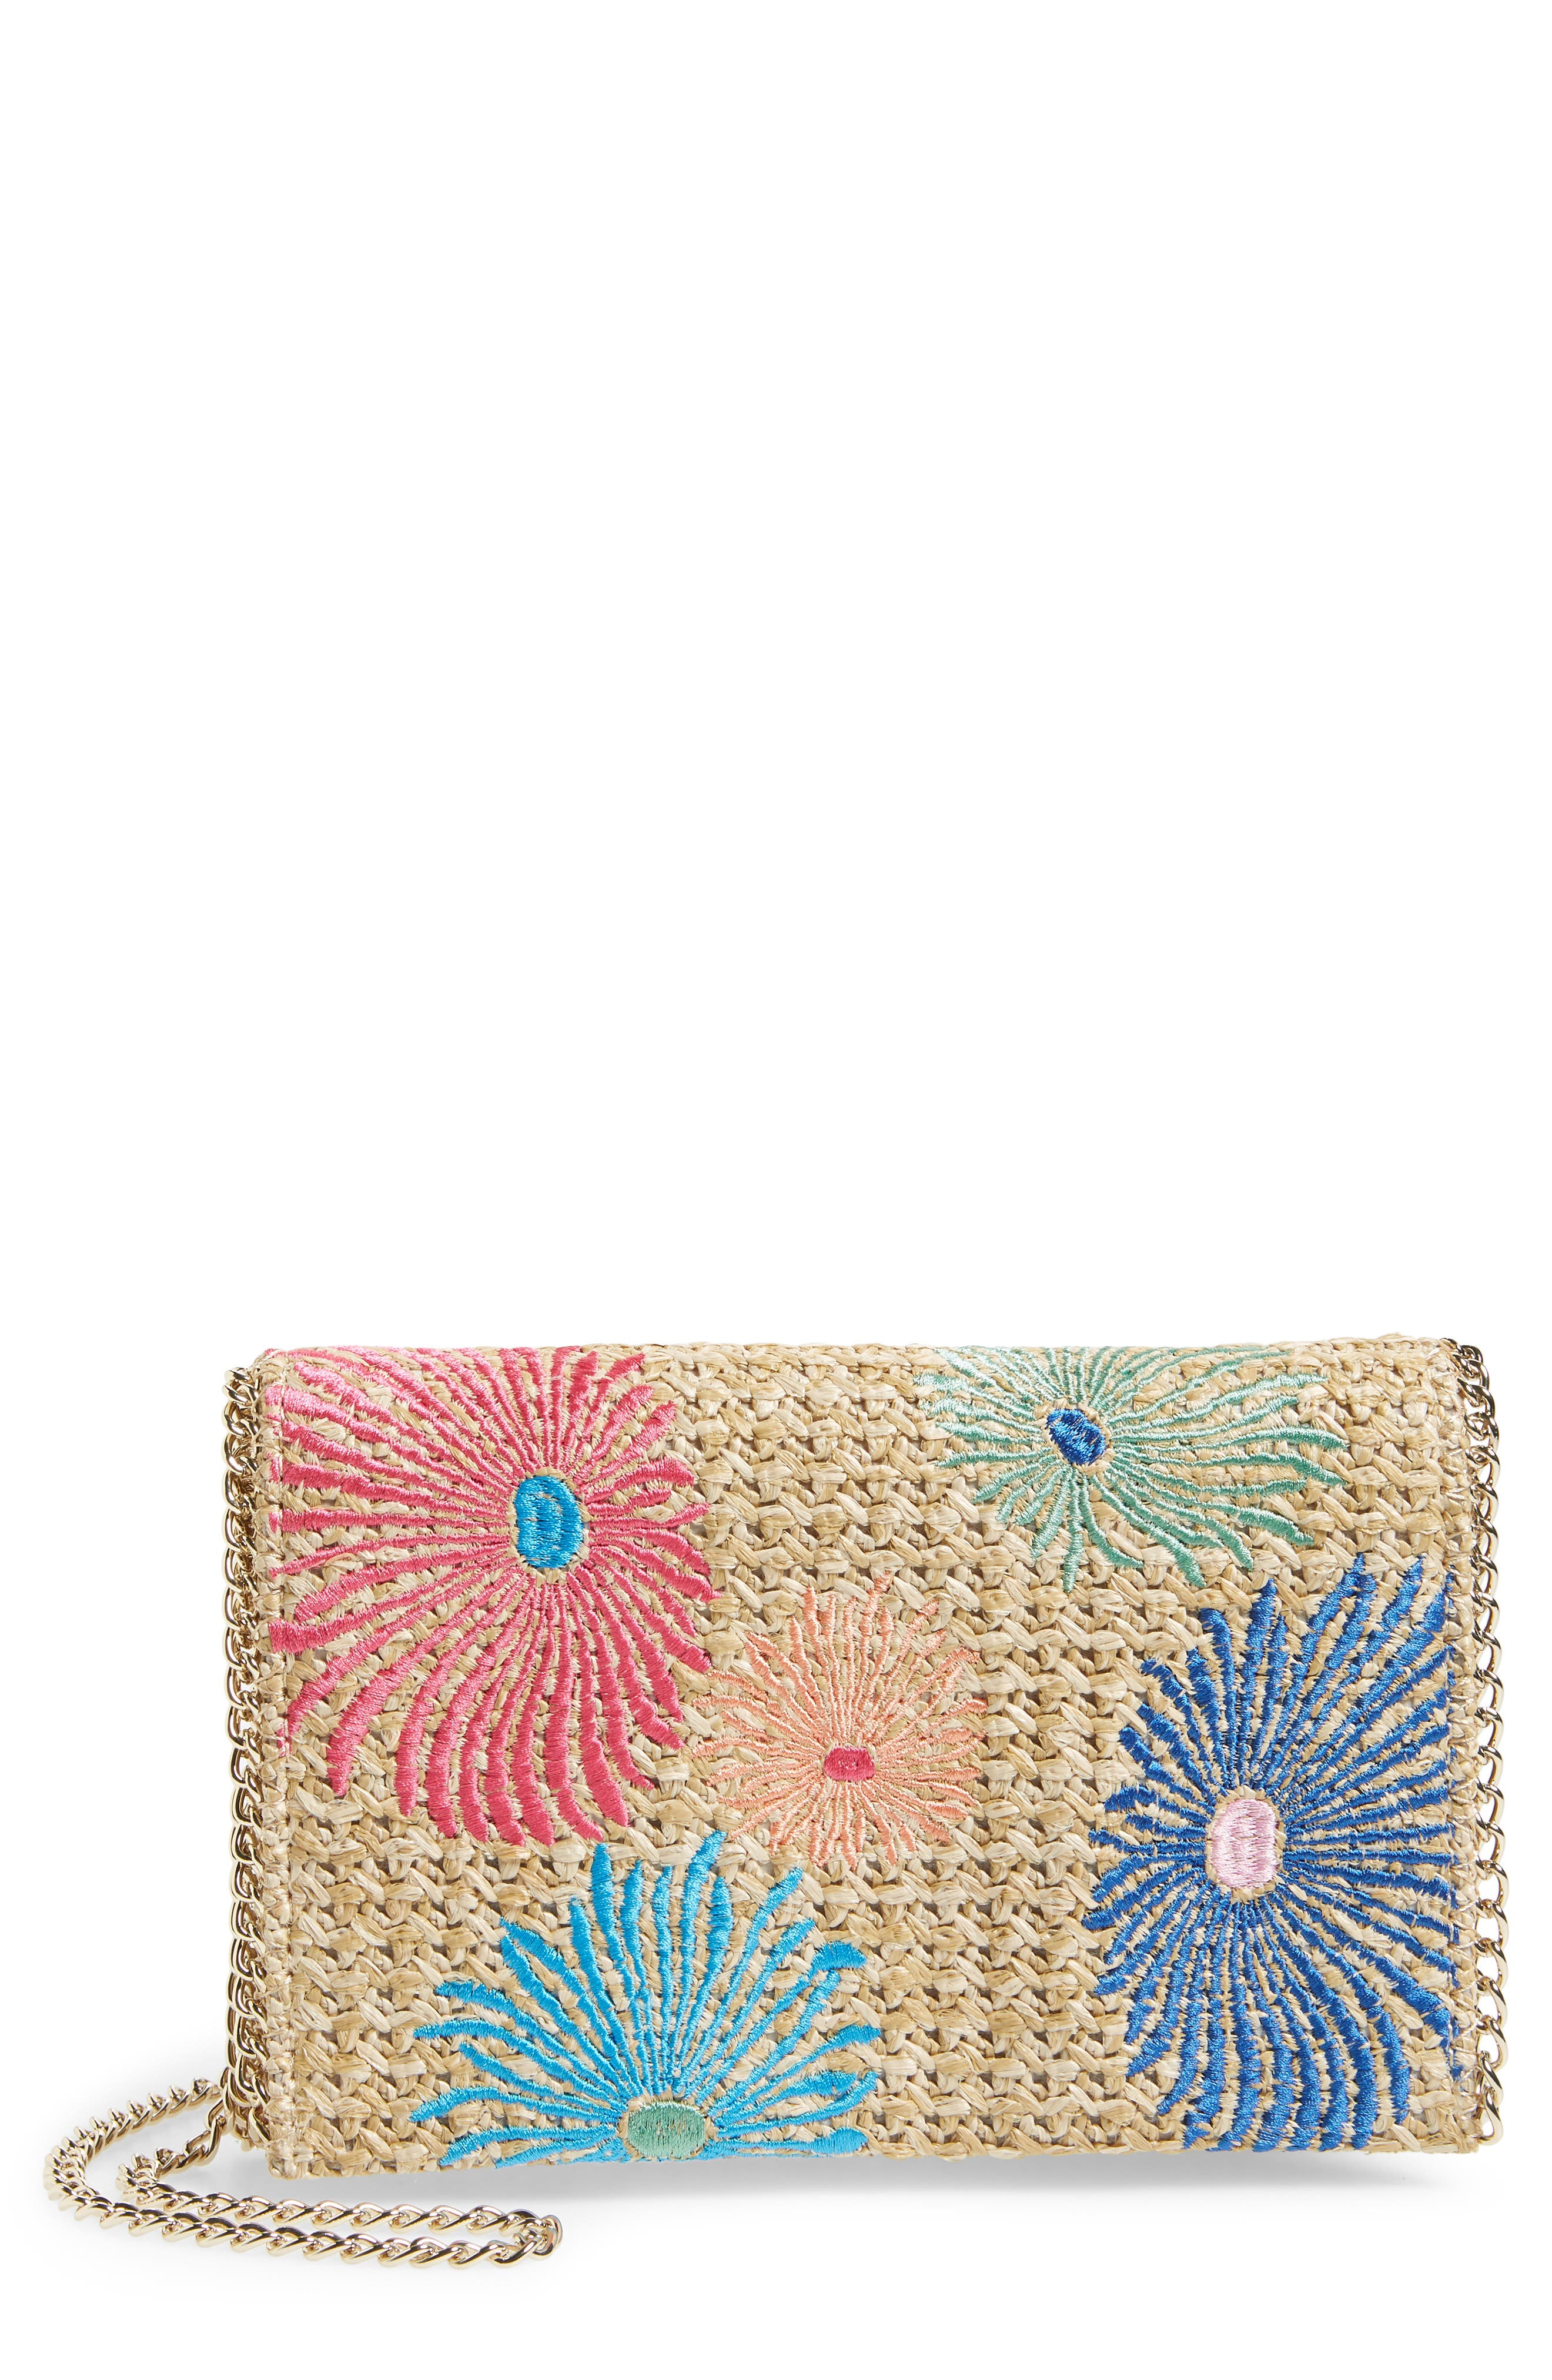 Chelsea28 Embroidered Woven Straw Clutch